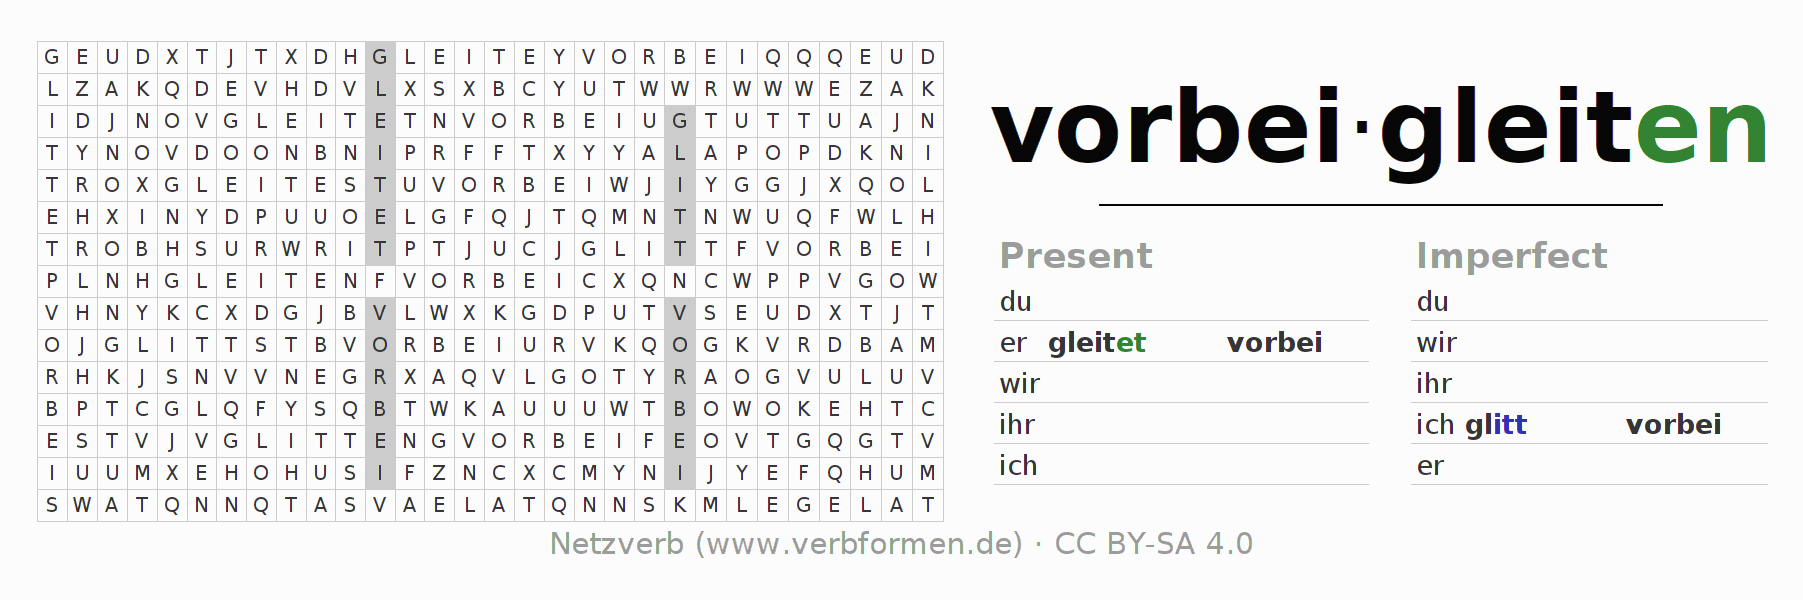 Word search puzzle for the conjugation of the verb vorbeigleiten